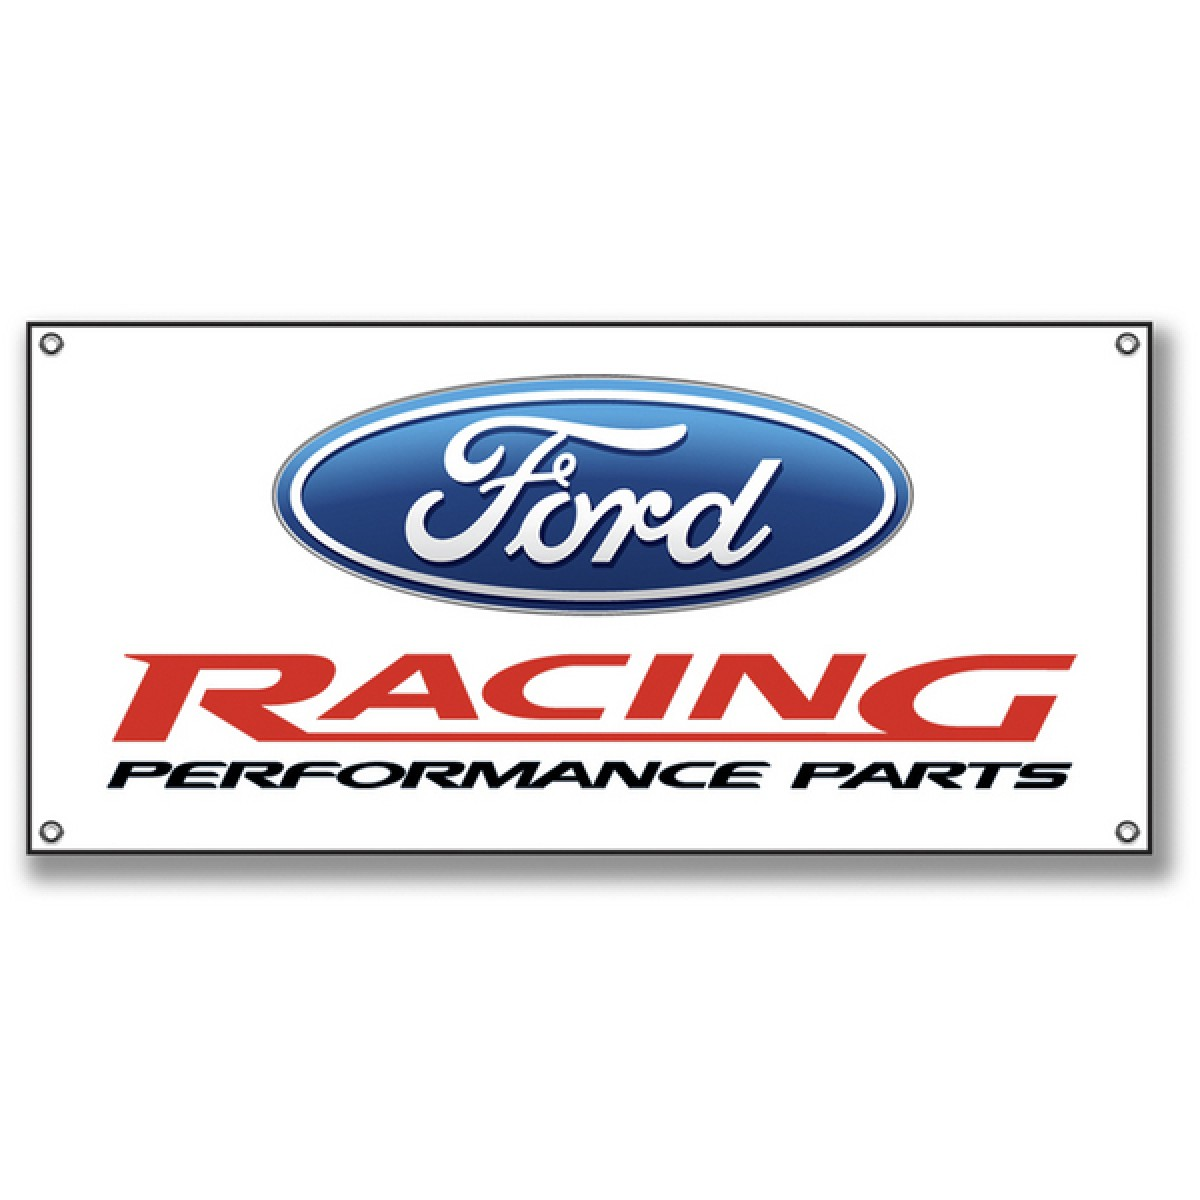 ford racing performance parts sign small. Black Bedroom Furniture Sets. Home Design Ideas